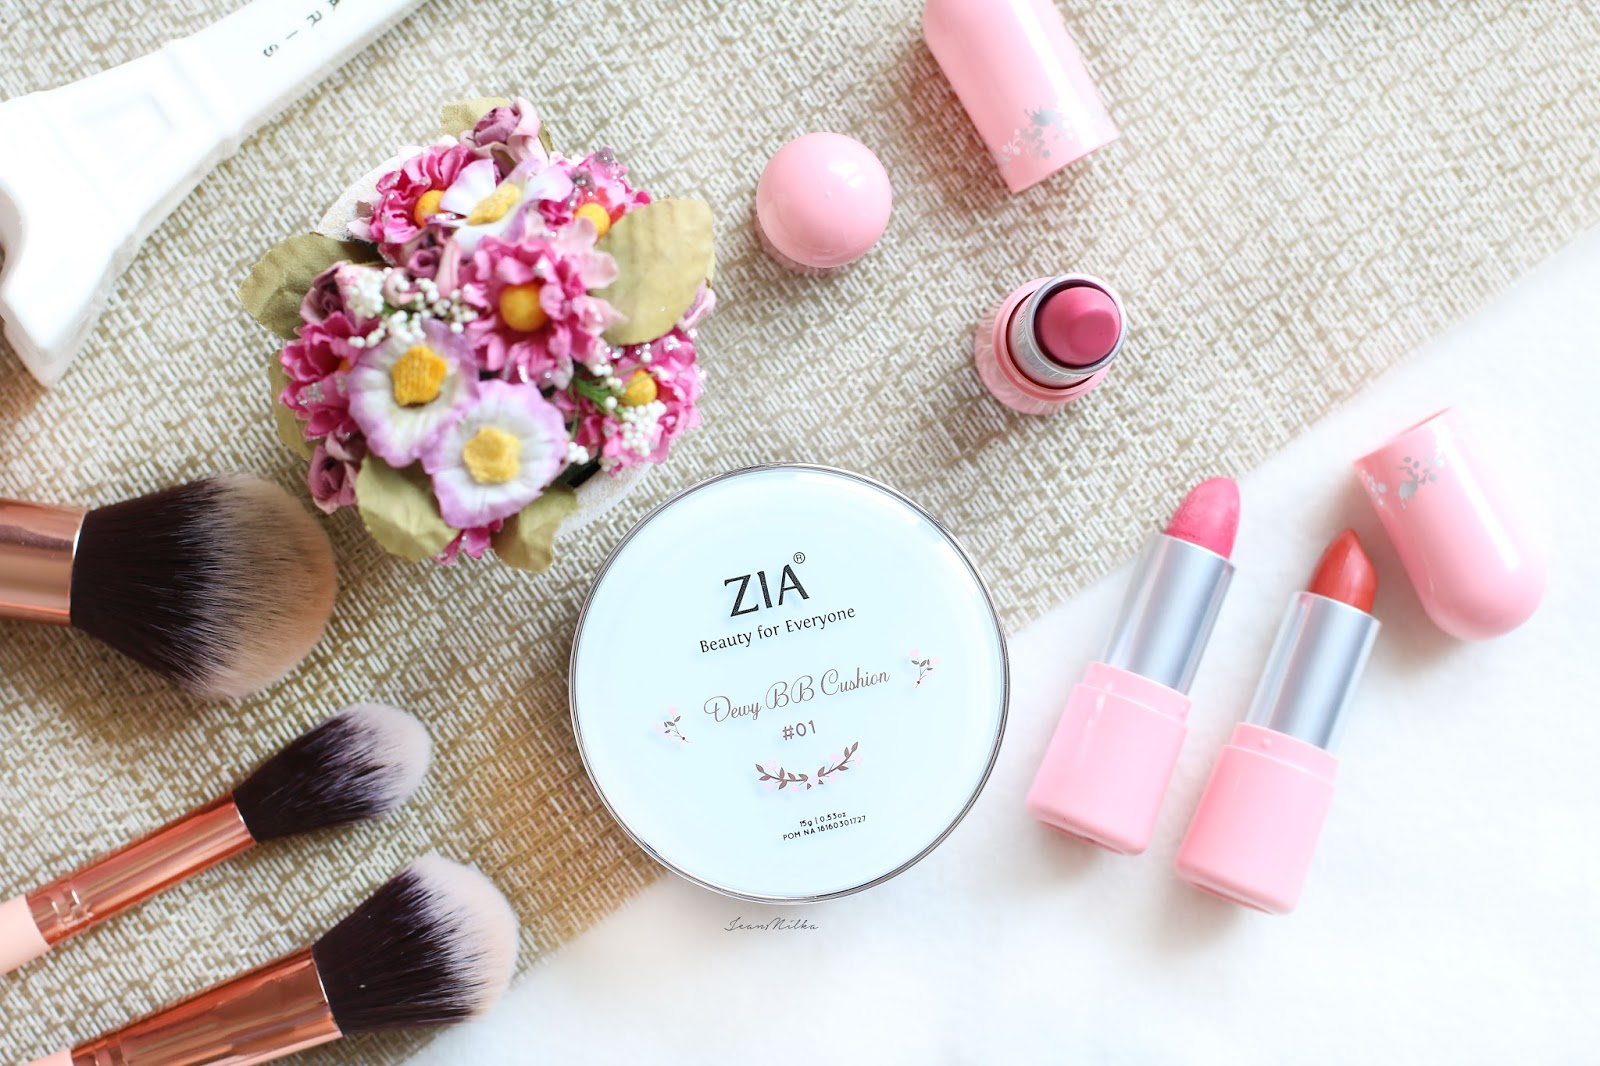 zia, zia skincare, makeup, beauty, produk indonesia, makeup indonesia, produk lokal, review